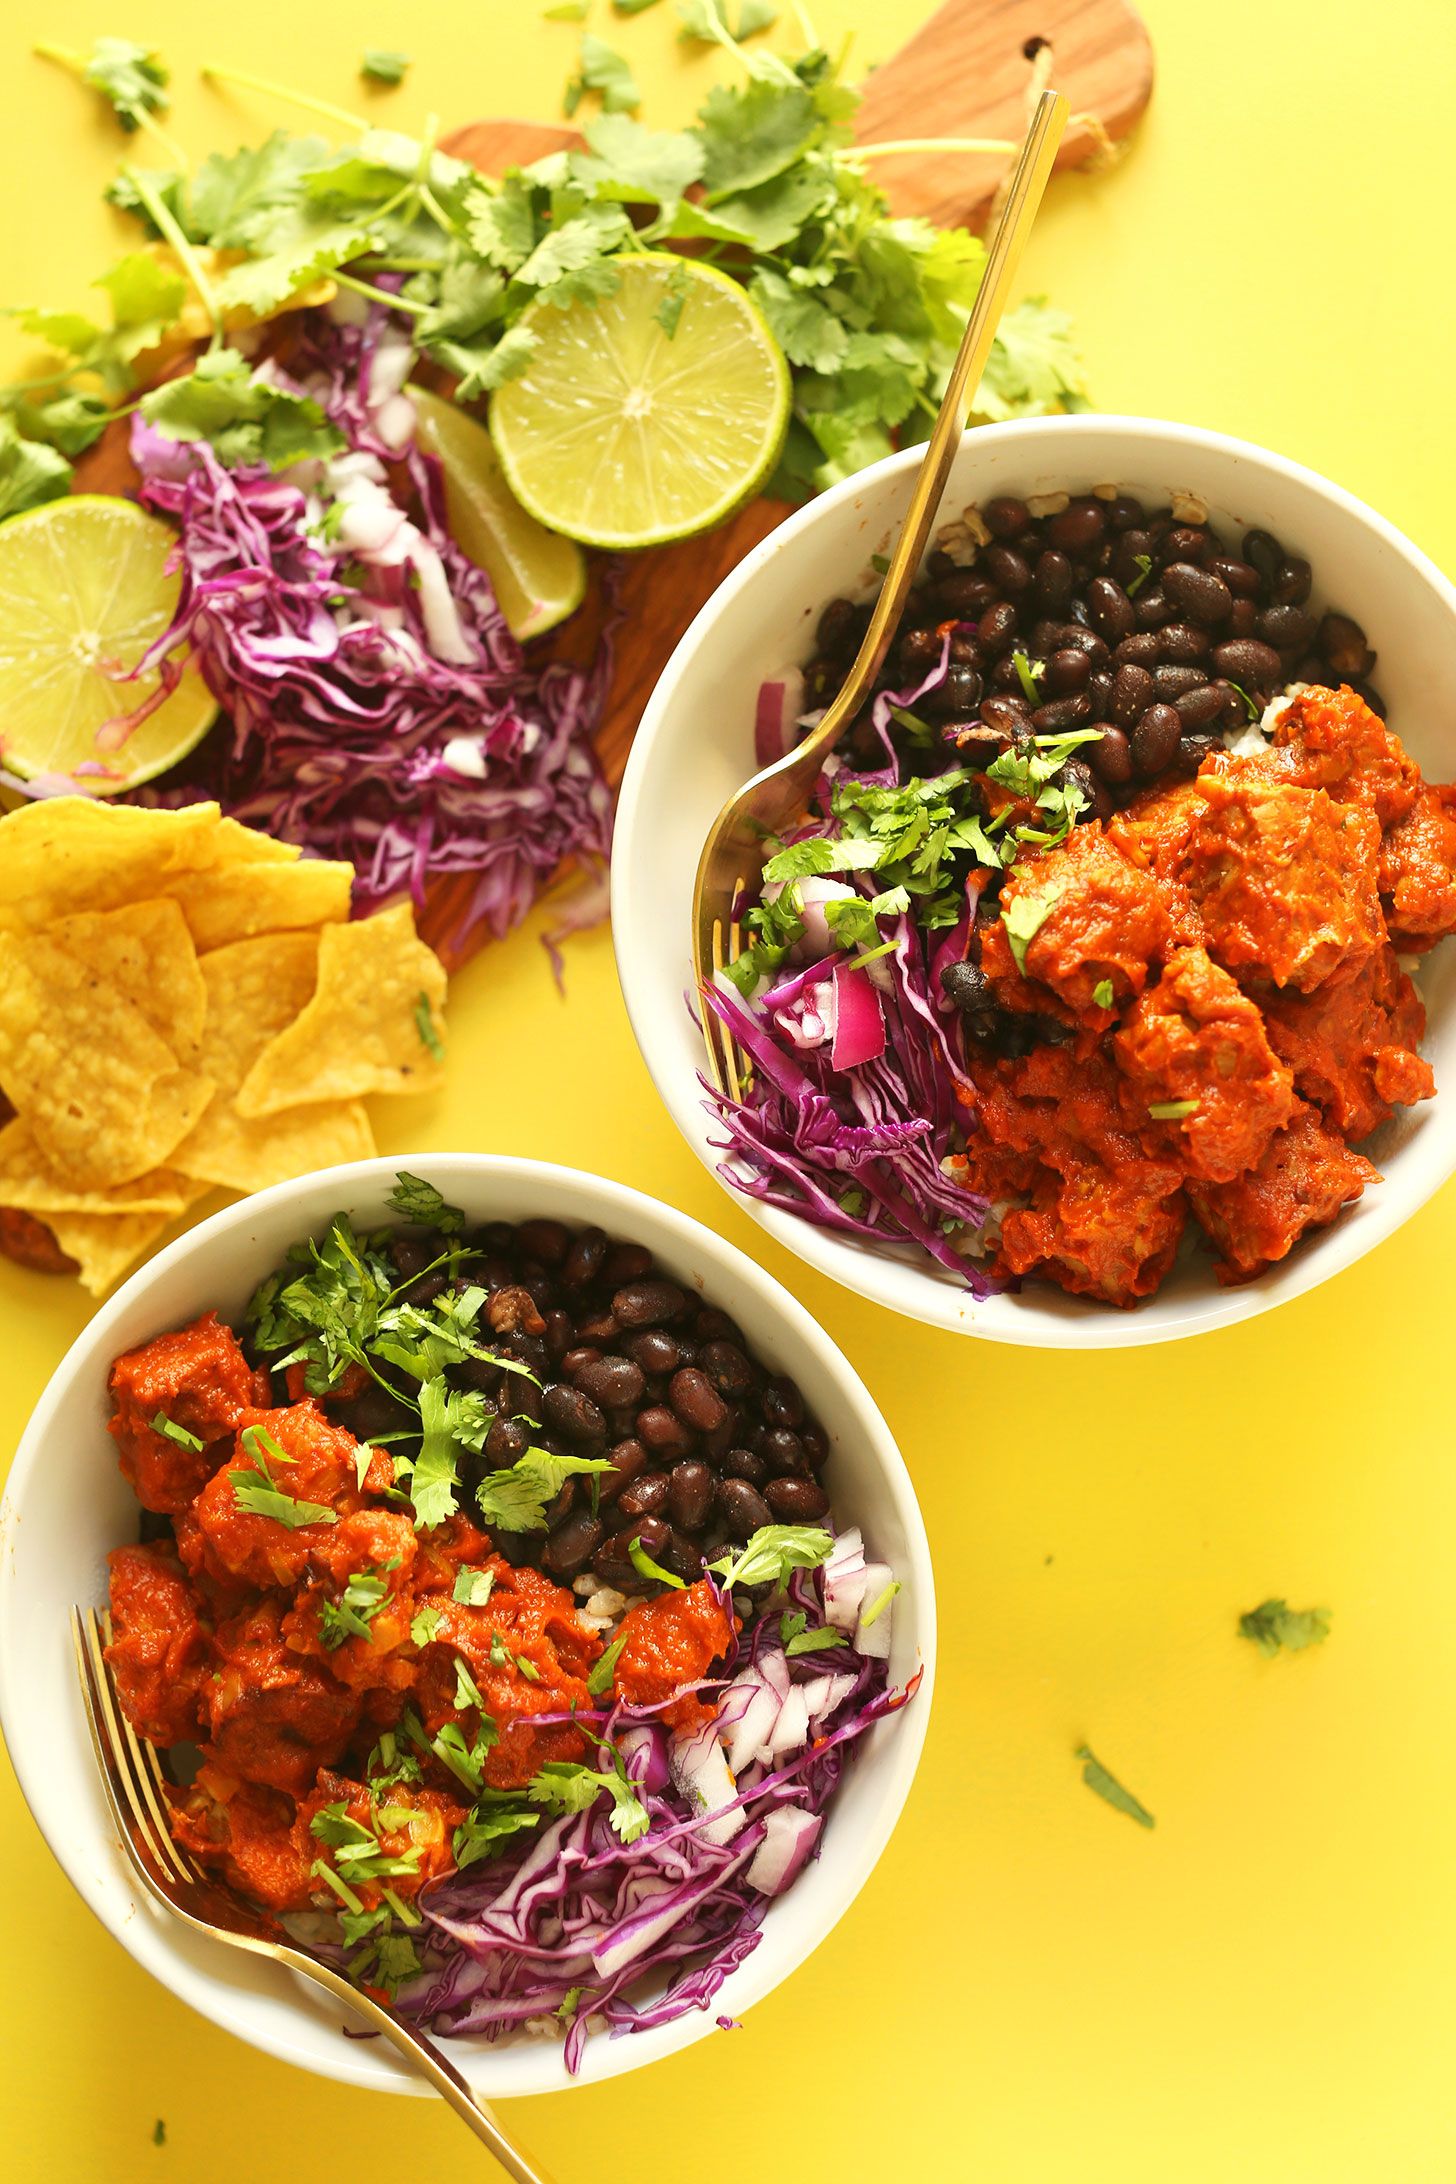 EASY Tempeh that TASTES GOOD! Smoky Tempeh Burrito Bowls with 9 basic ingredients! #vegan #glutenfree #tempeh #burrito #mexican #recipe #protein #minimalistbaker